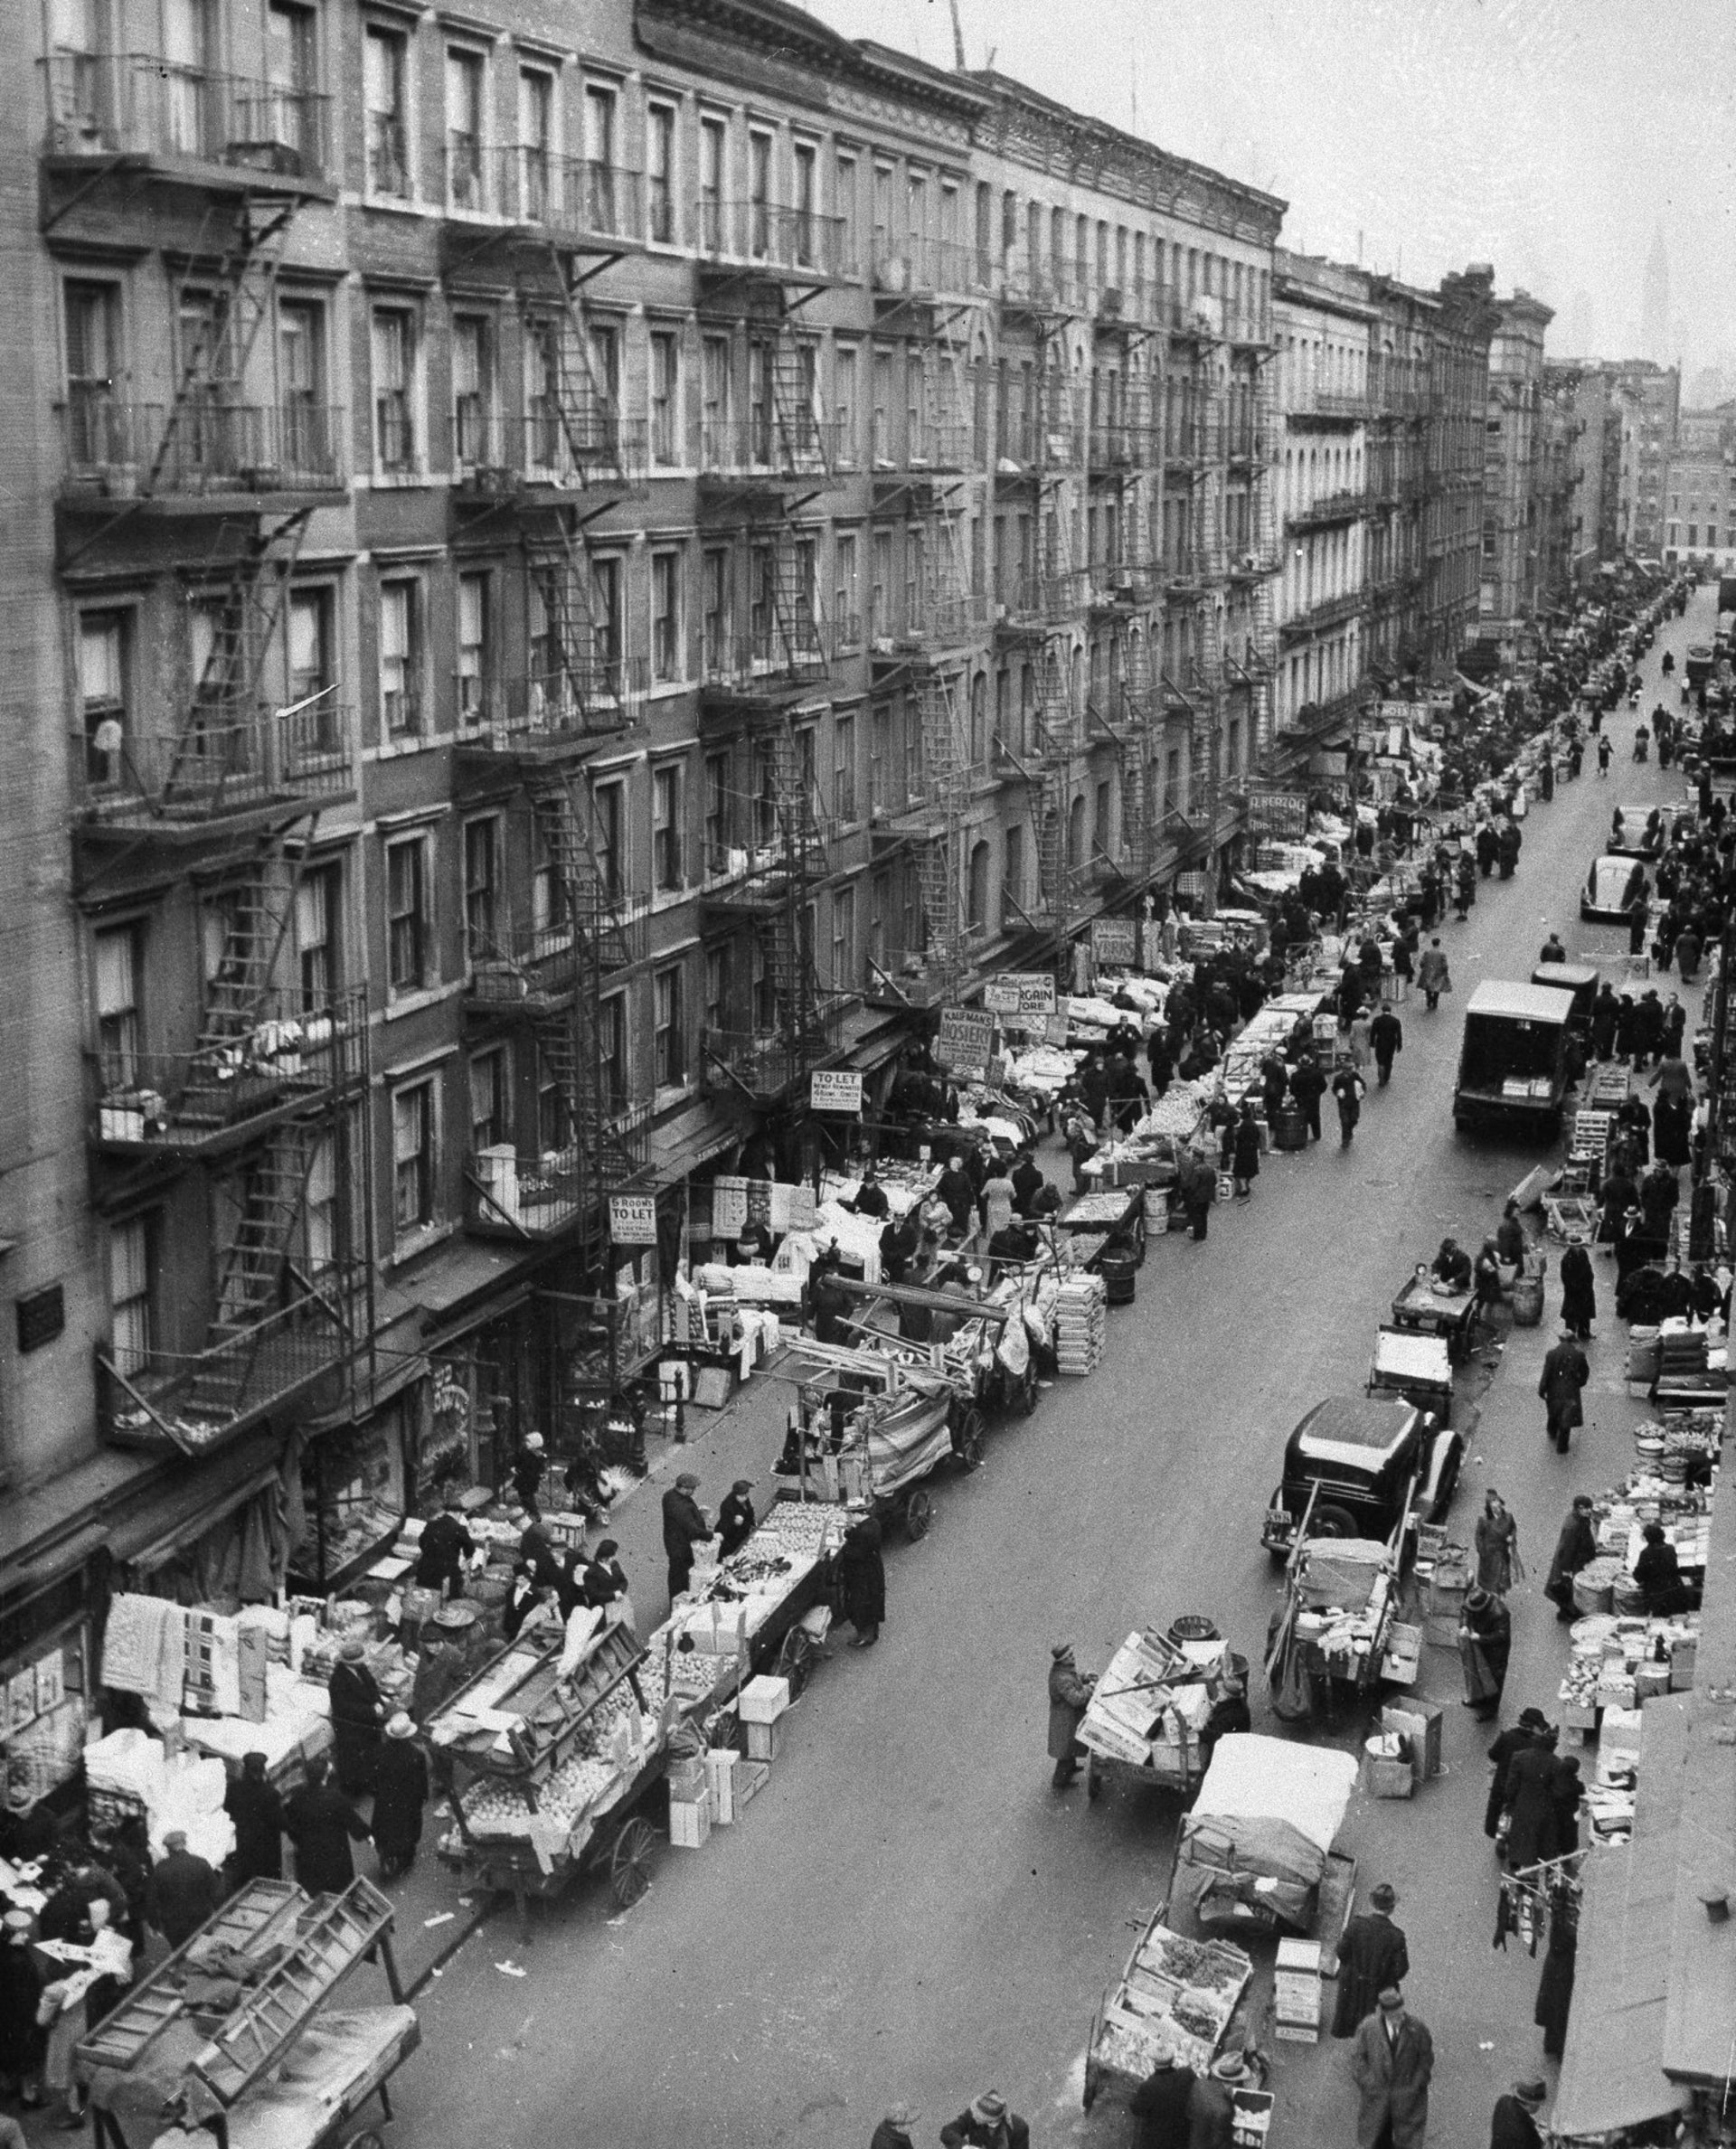 Crowded tenement buildings in Manhattan's Lower East Side in 1933. Bill Freeman escaped the slum housing in the 1930s, but encountered anti-Semitism on Long Island.